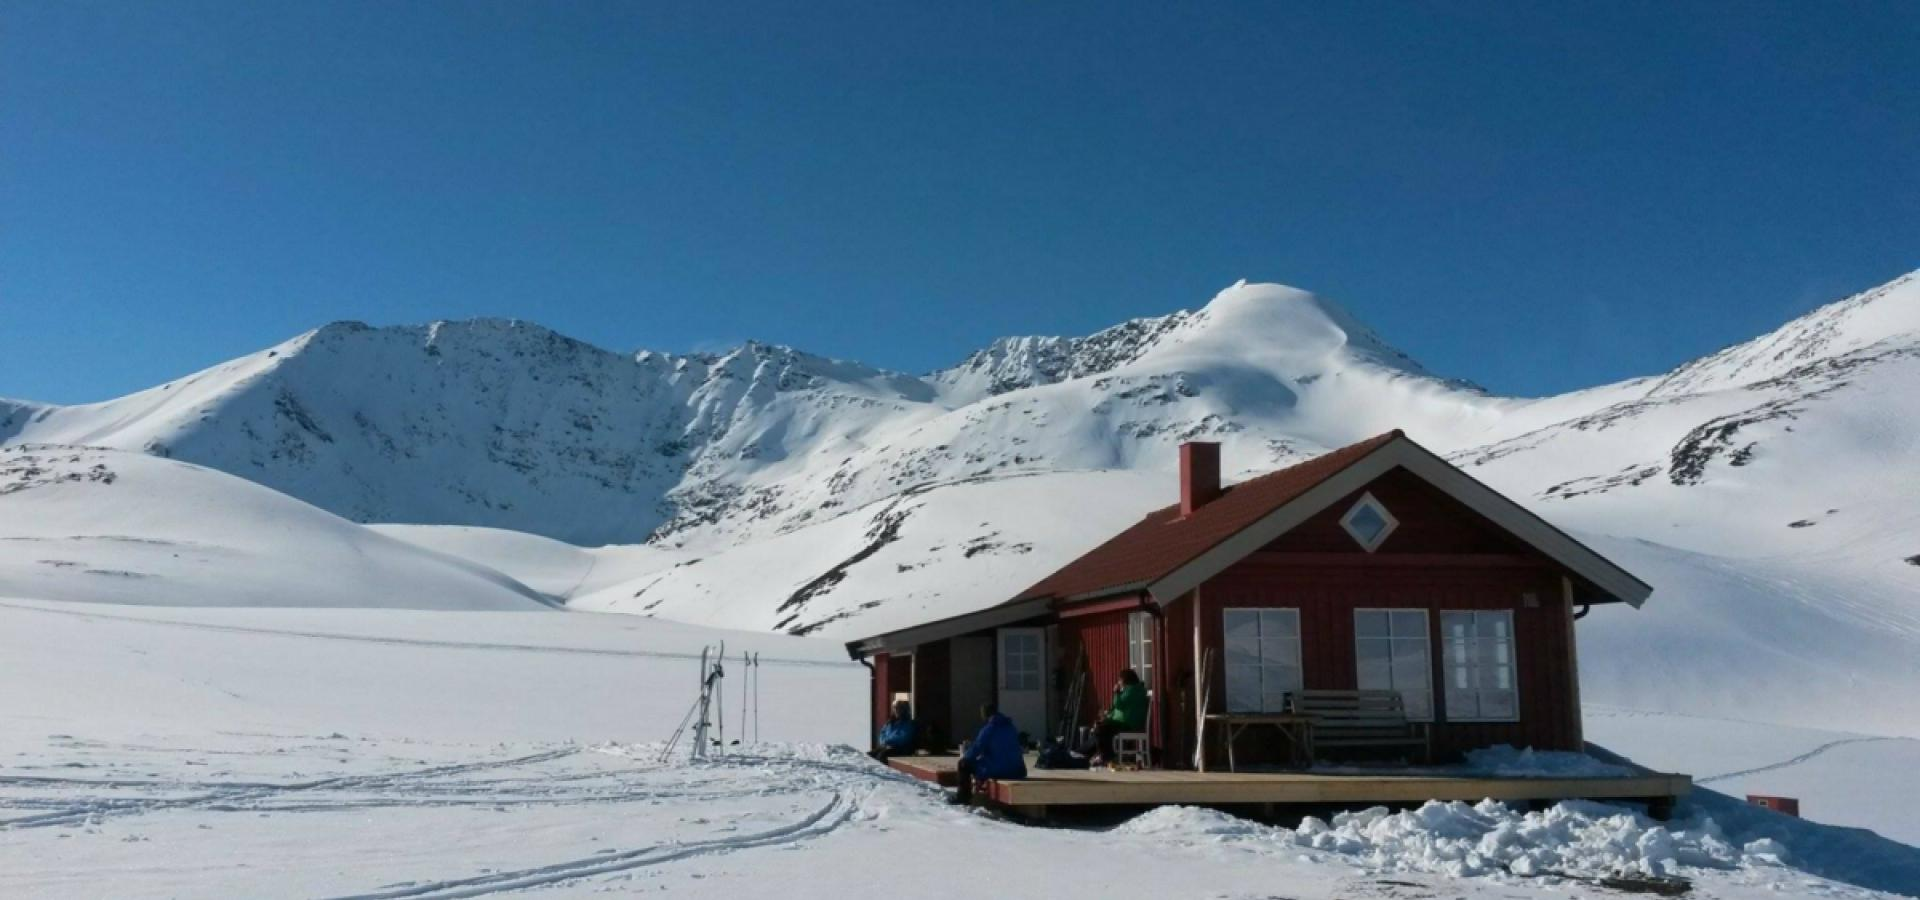 Rørneshytta - rec cabin in the Lyngen Alps in winter